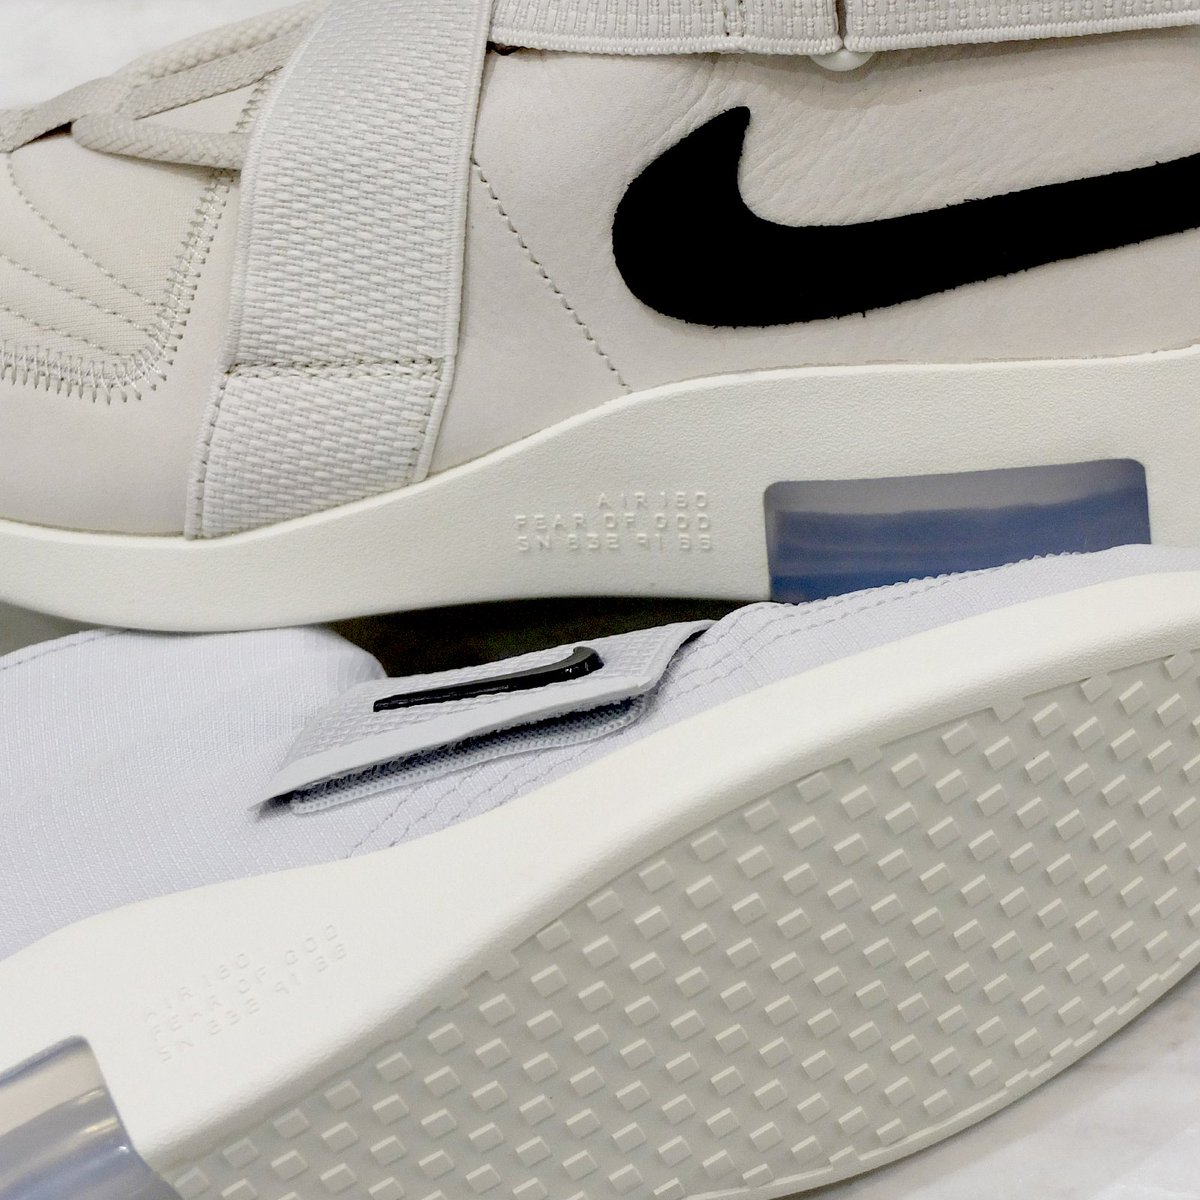 131d100ae6f ONLINE RAFFLES are now OPEN for the Nike Air Fear of God 180